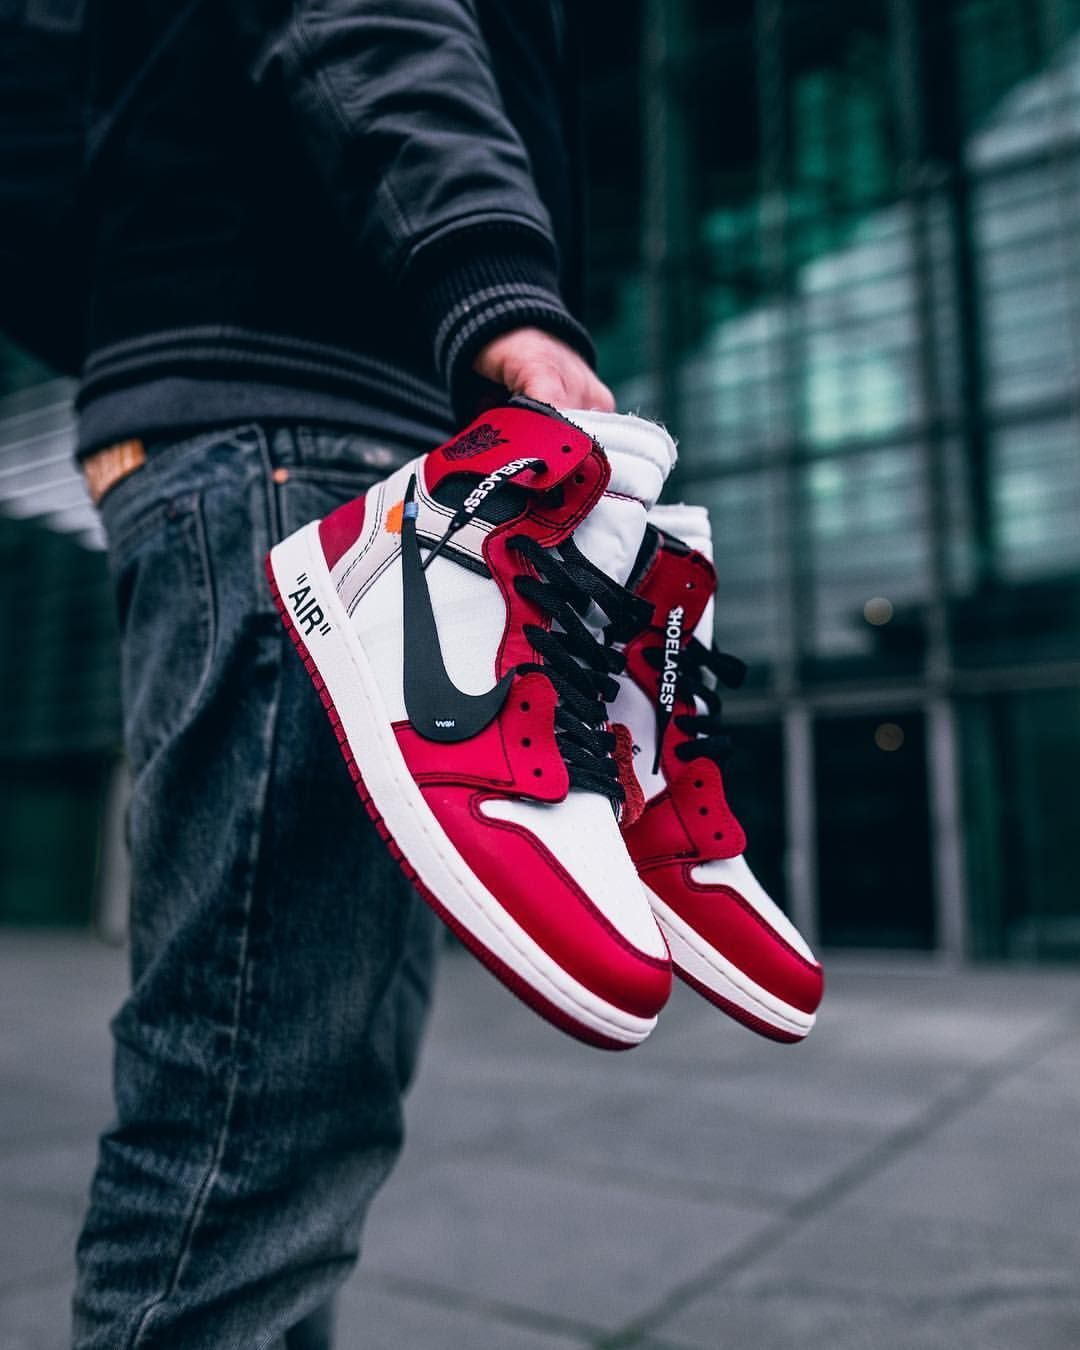 competitive price 0b159 68888 OFF WHITE x Nike Air Jordan 1